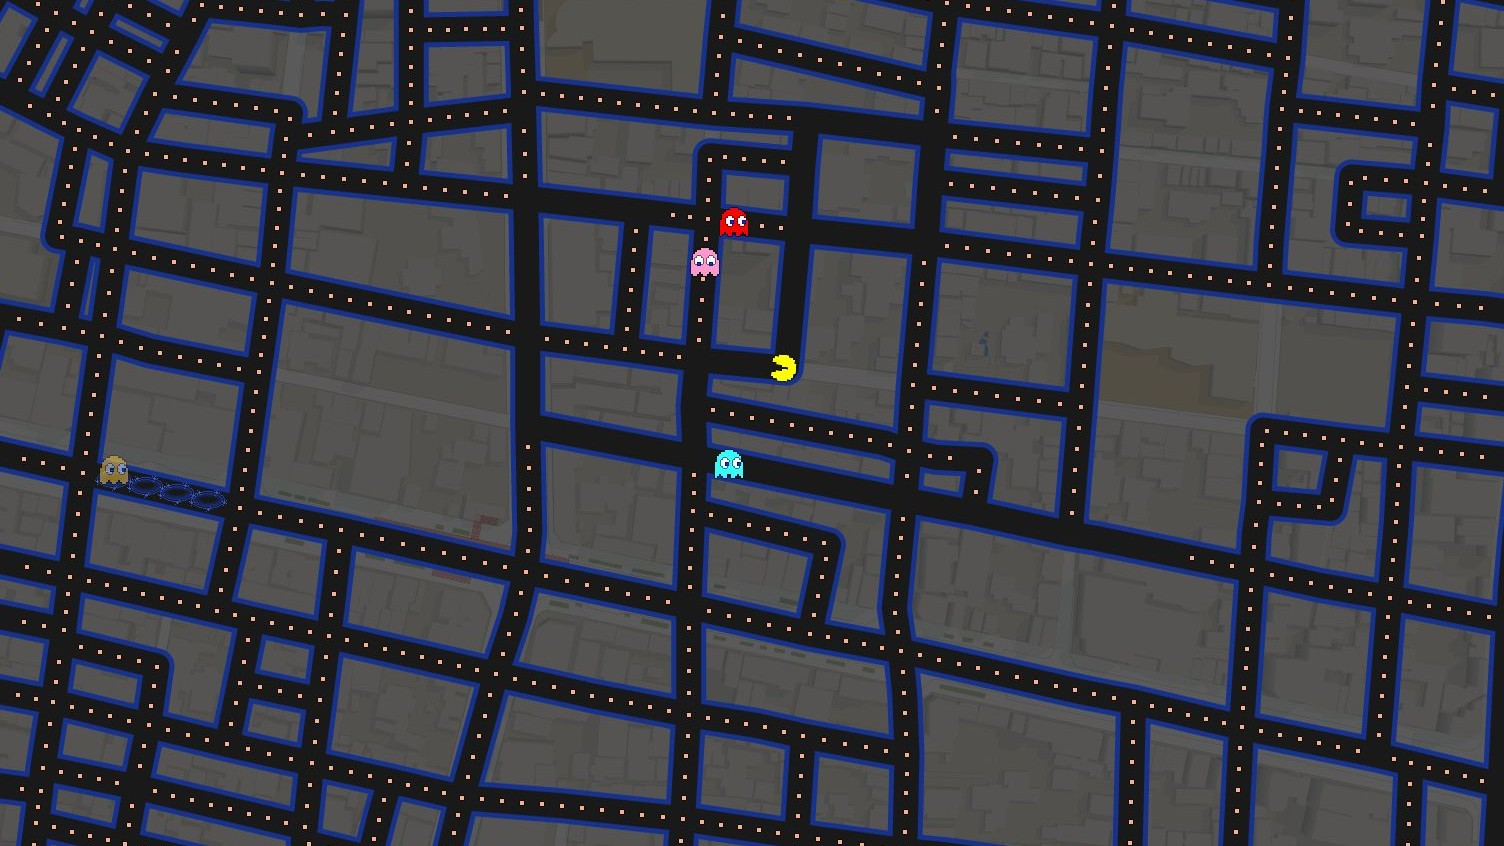 Play 'Pac-Man' on Google Maps for April Fools